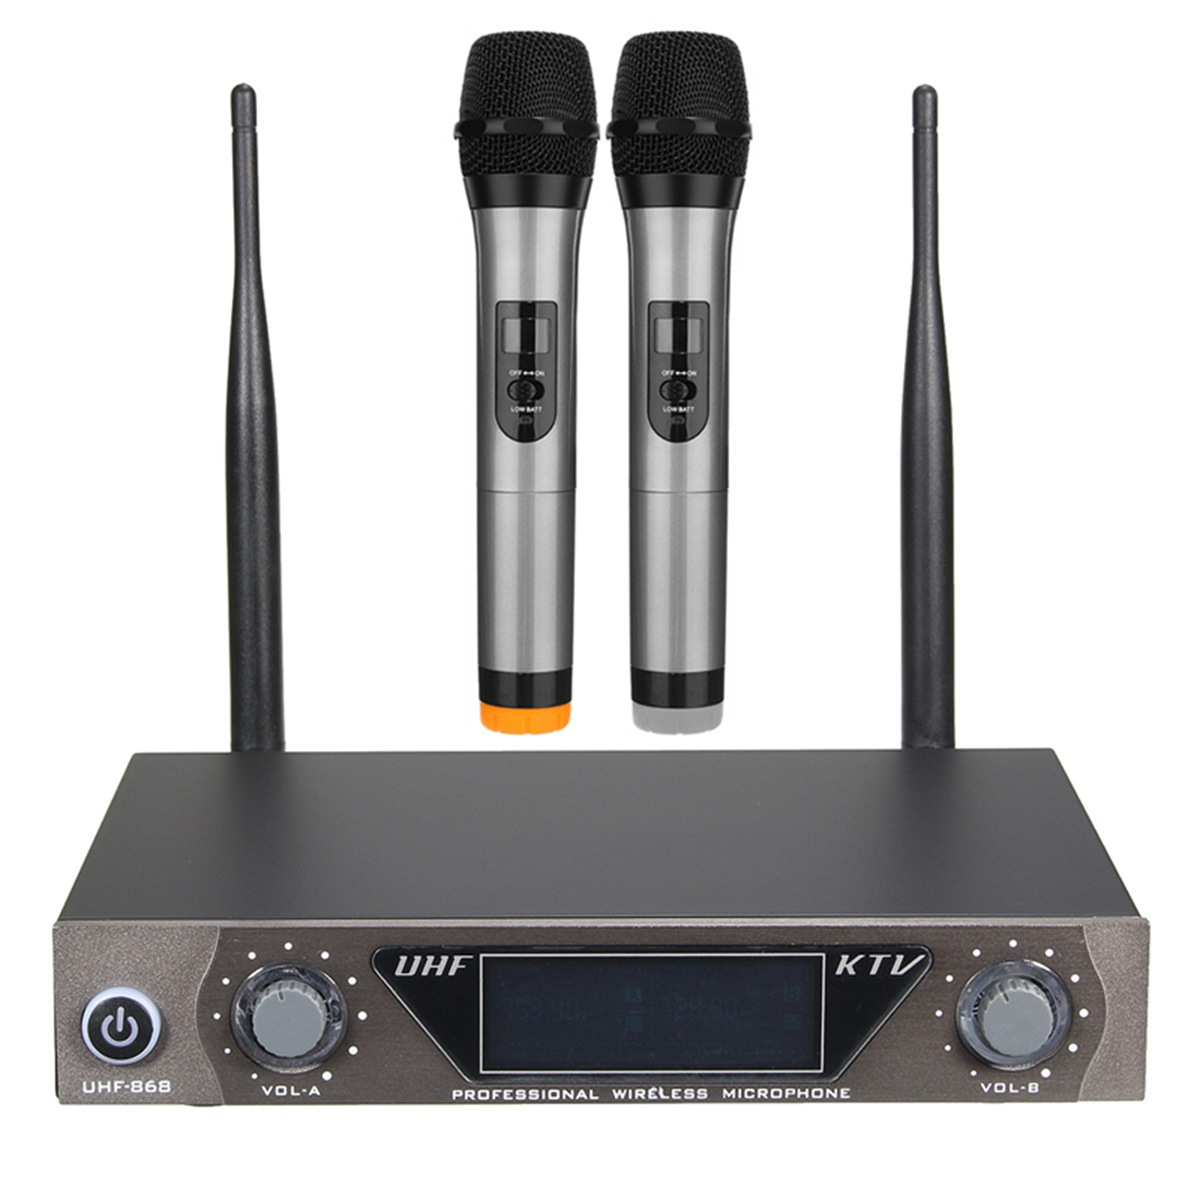 LEORY UHF Karaoke Wireless Microphone System With 2 Handheld Mic Dual Channel UHF Transmitter Microphone Systerm For Karaoke ur6s professional uhf karaoke wireless microphone system 2 channels cordless handheld mic mike for stage speech ktv 80m distance